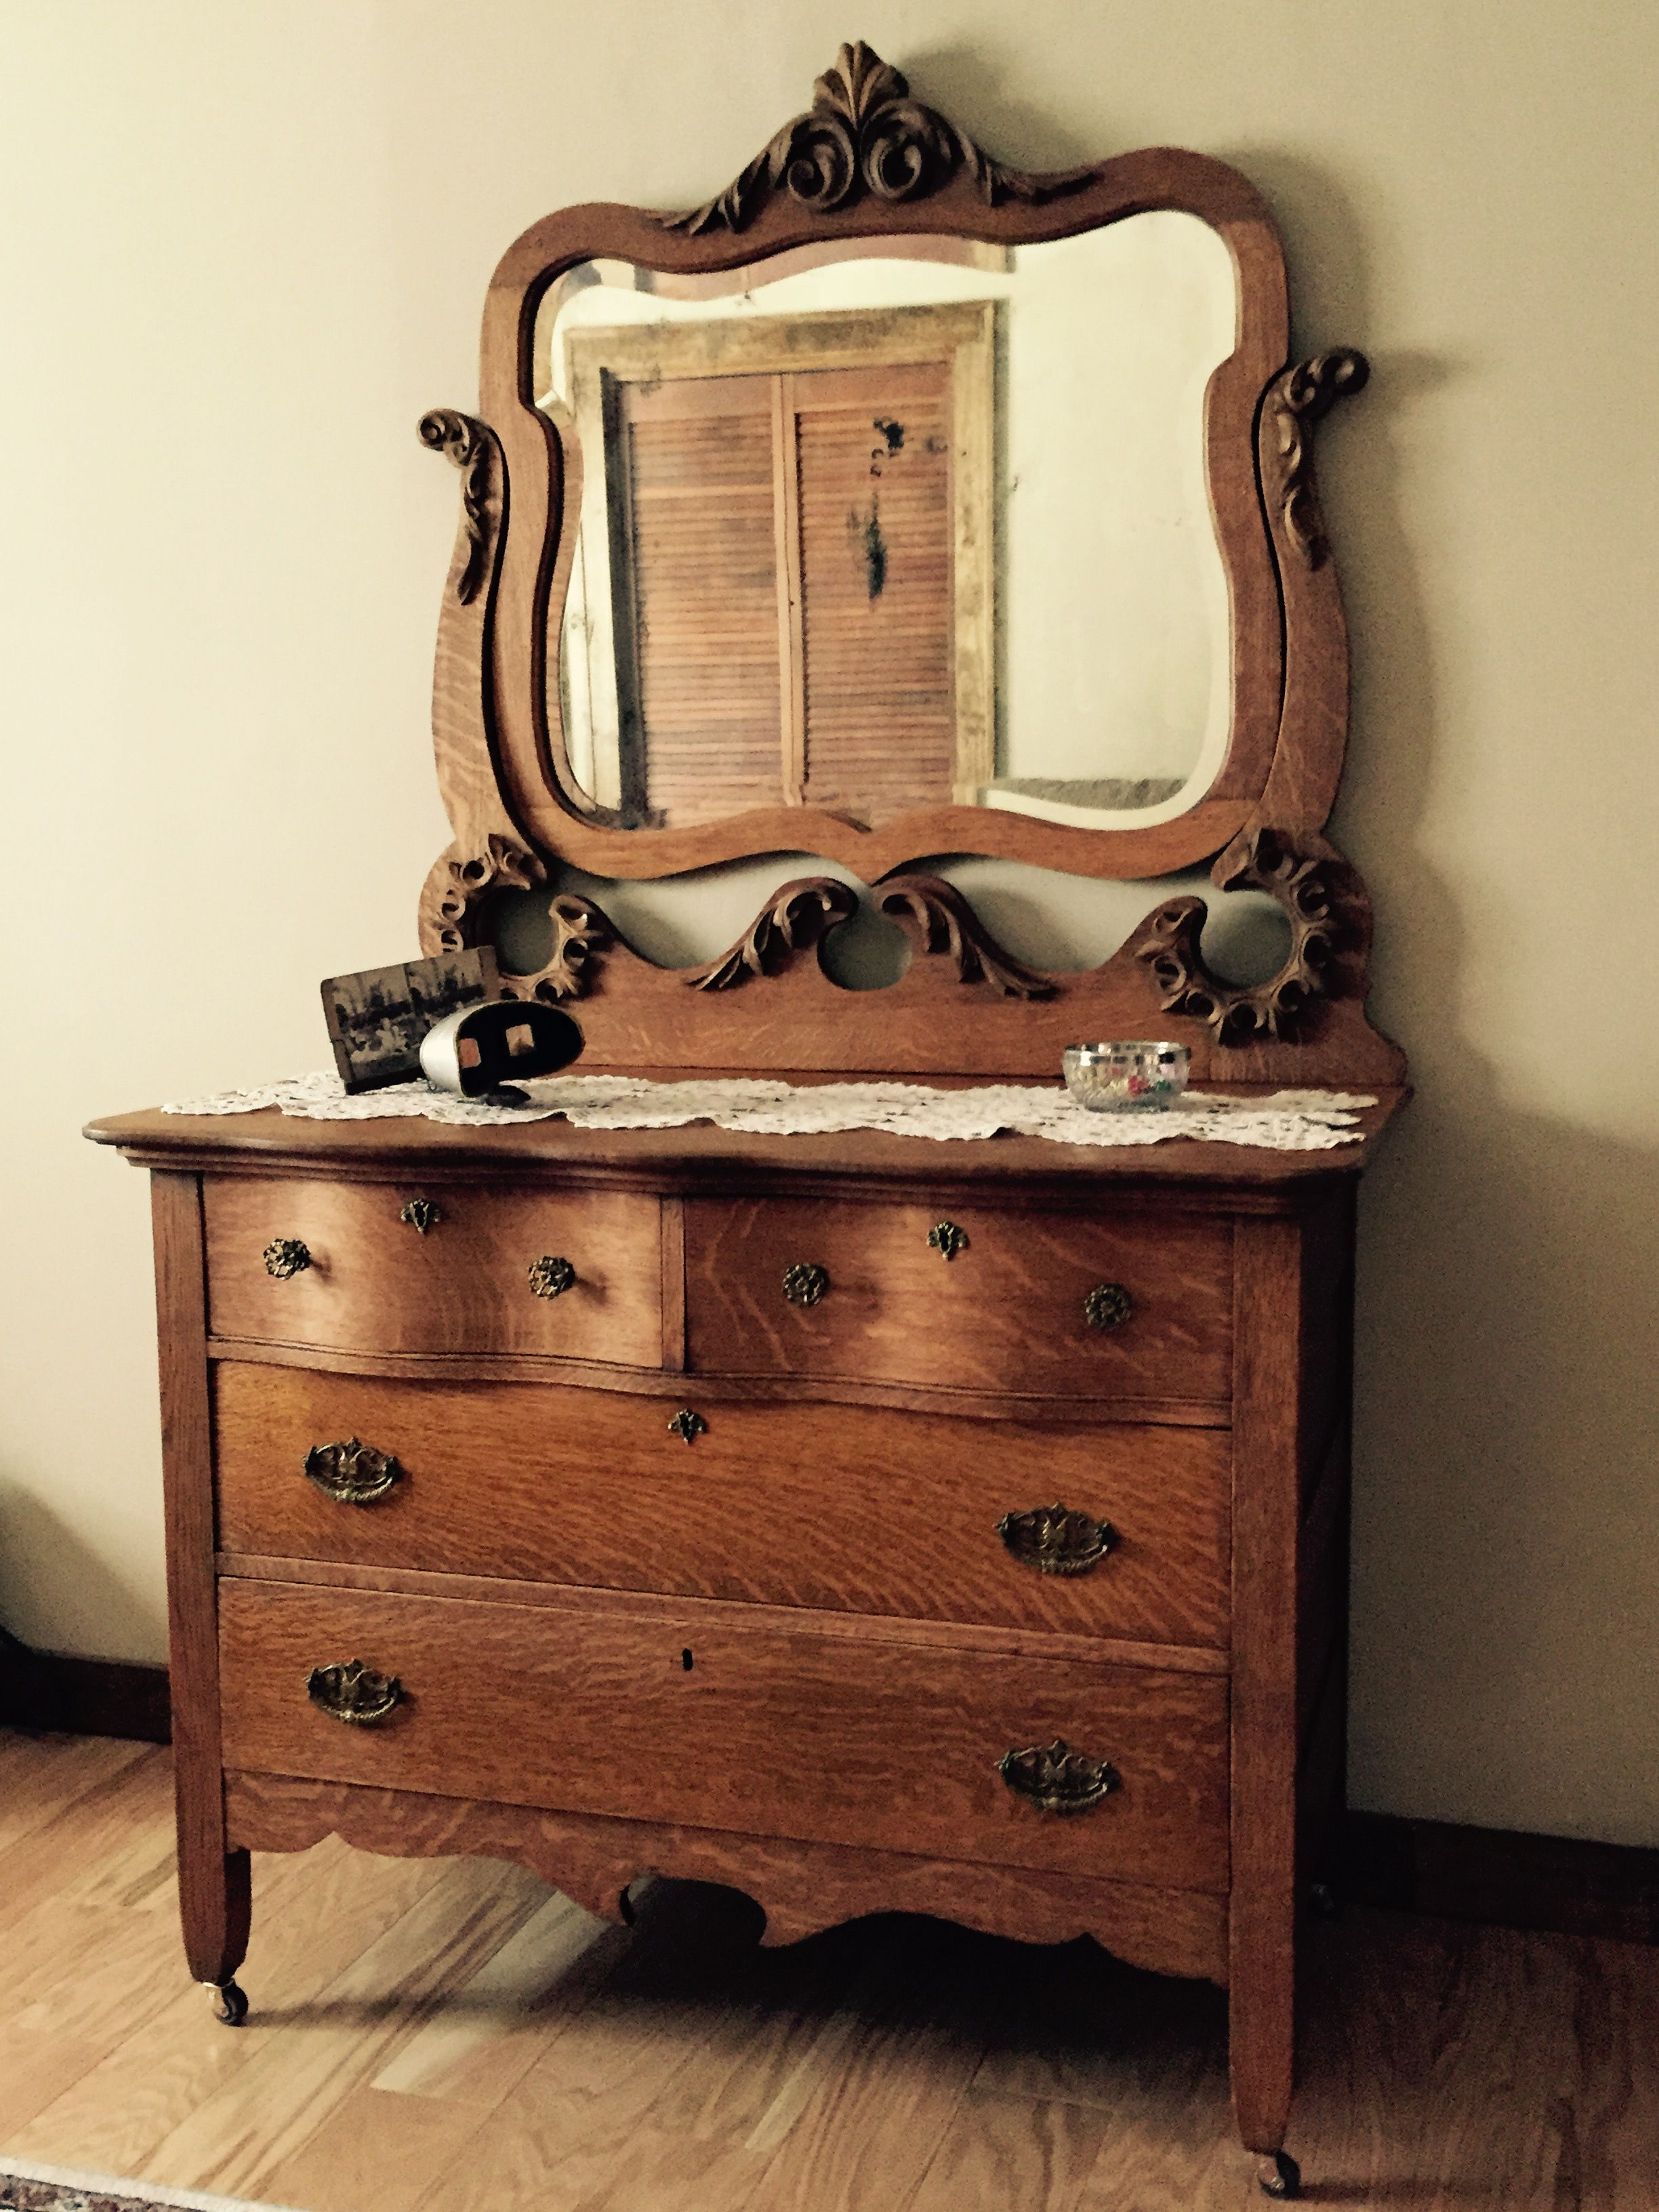 Antique oak dresser with mirror.  Antique bedroom furniture